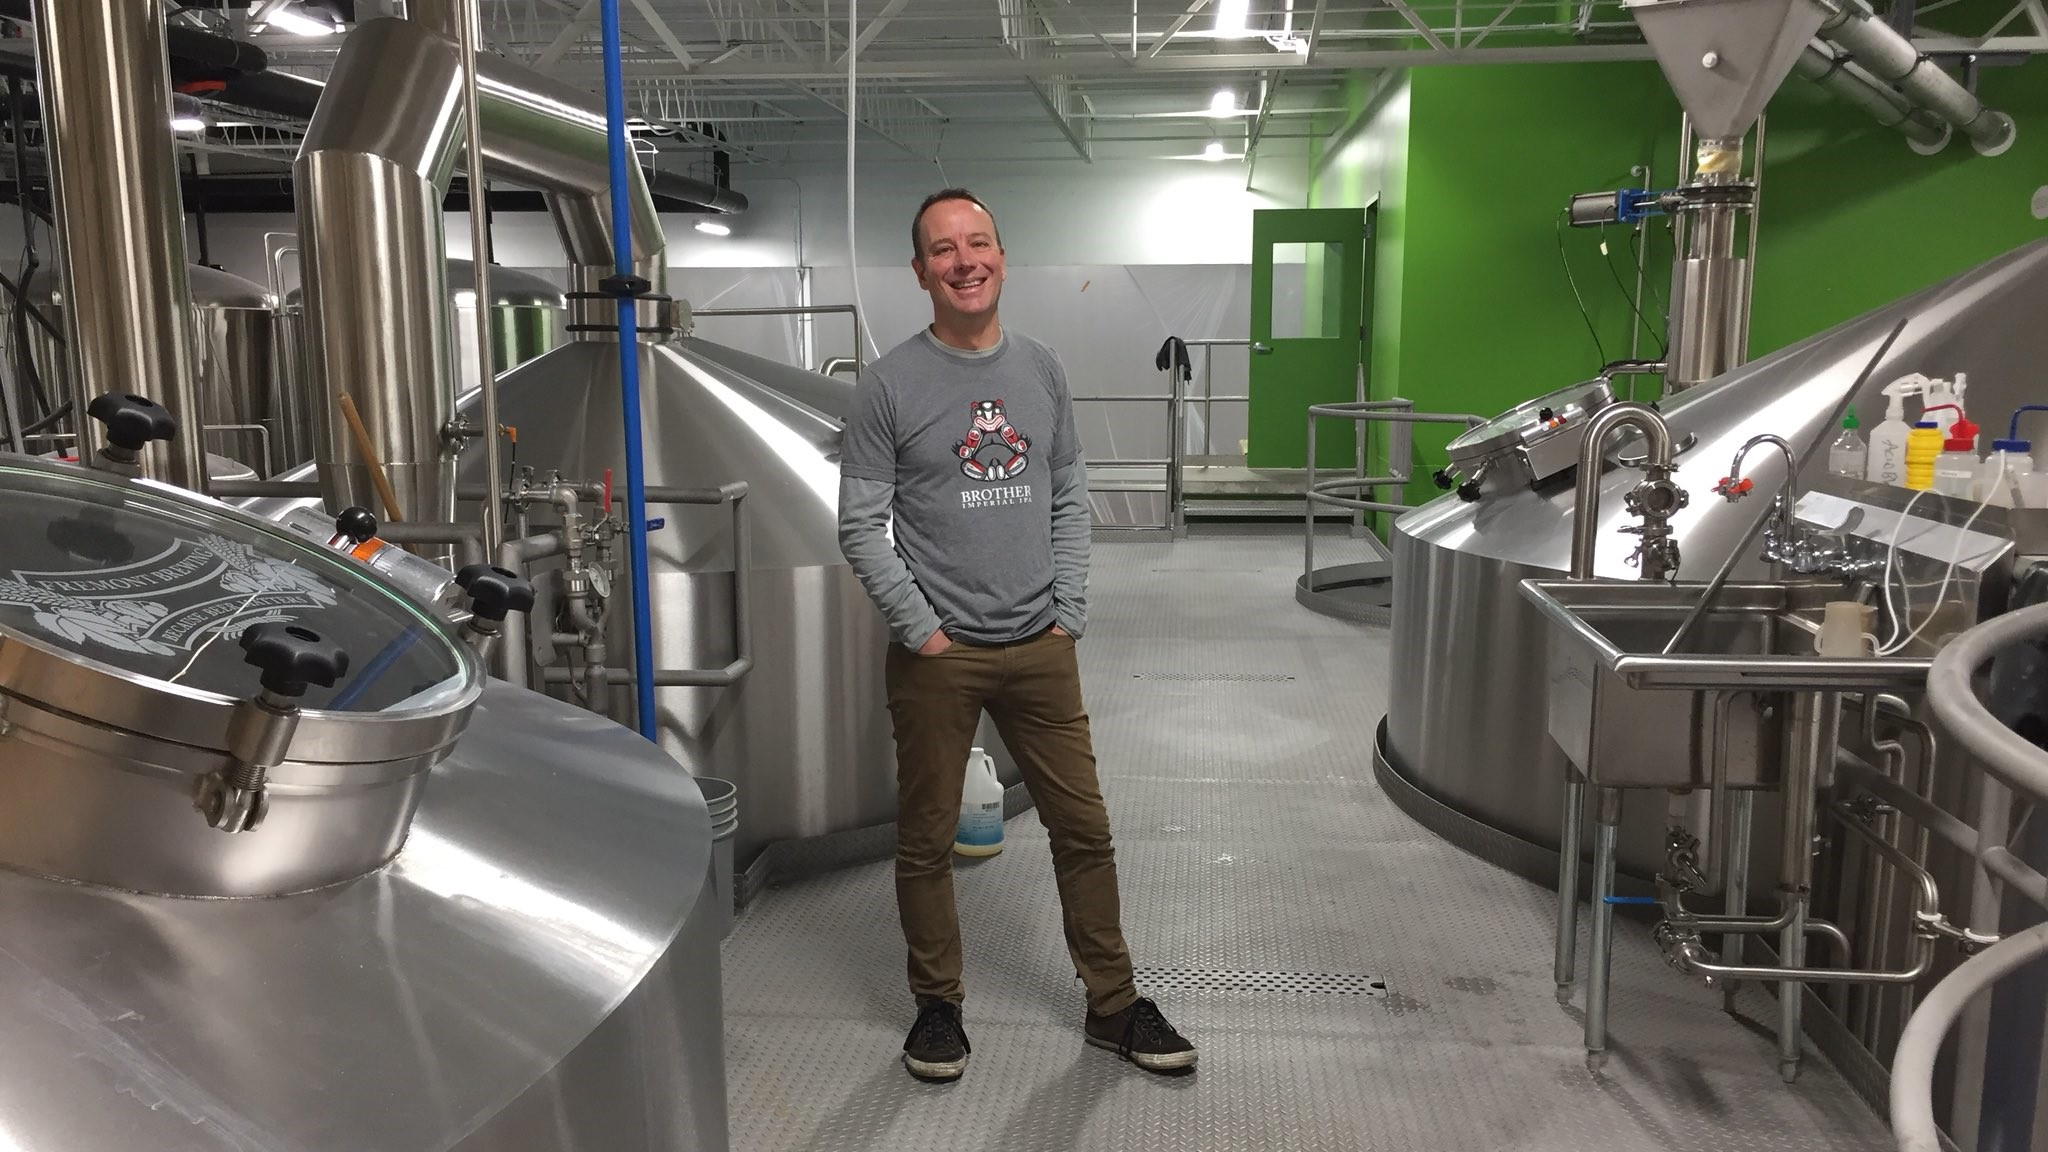 Matt Lincecum in Fremont Brewing's big new Huppmann brewhouse (Seattle).